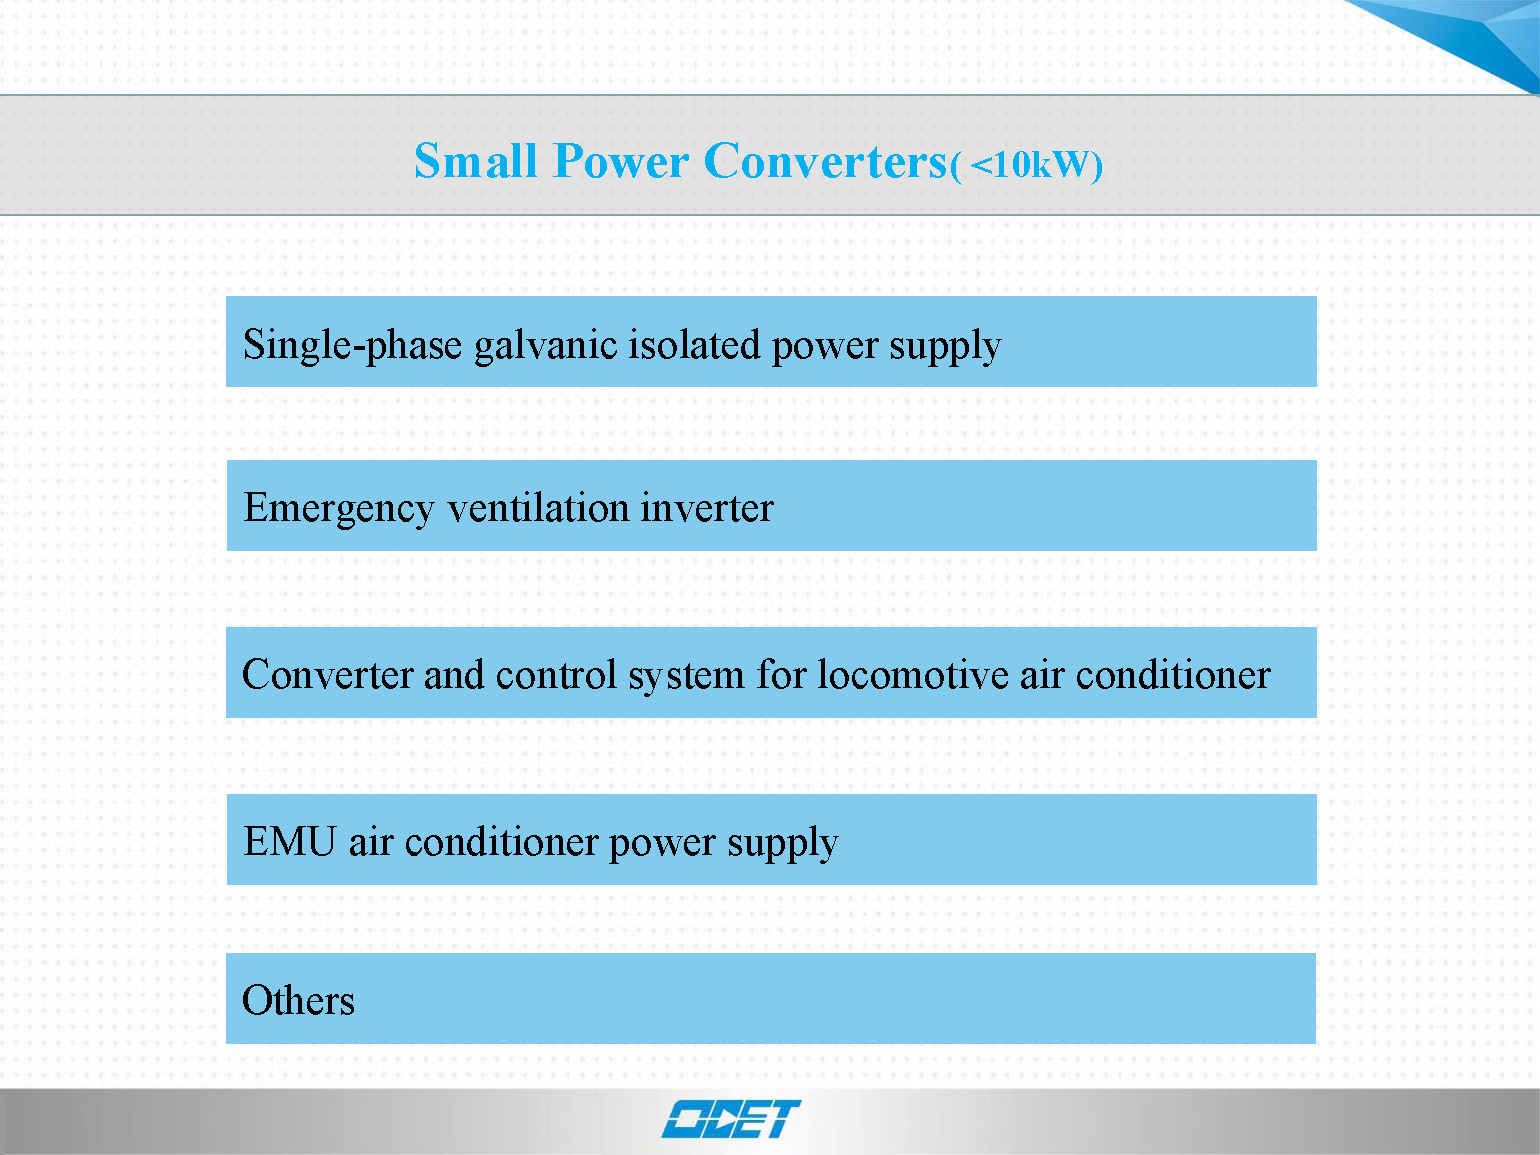 Small power converters